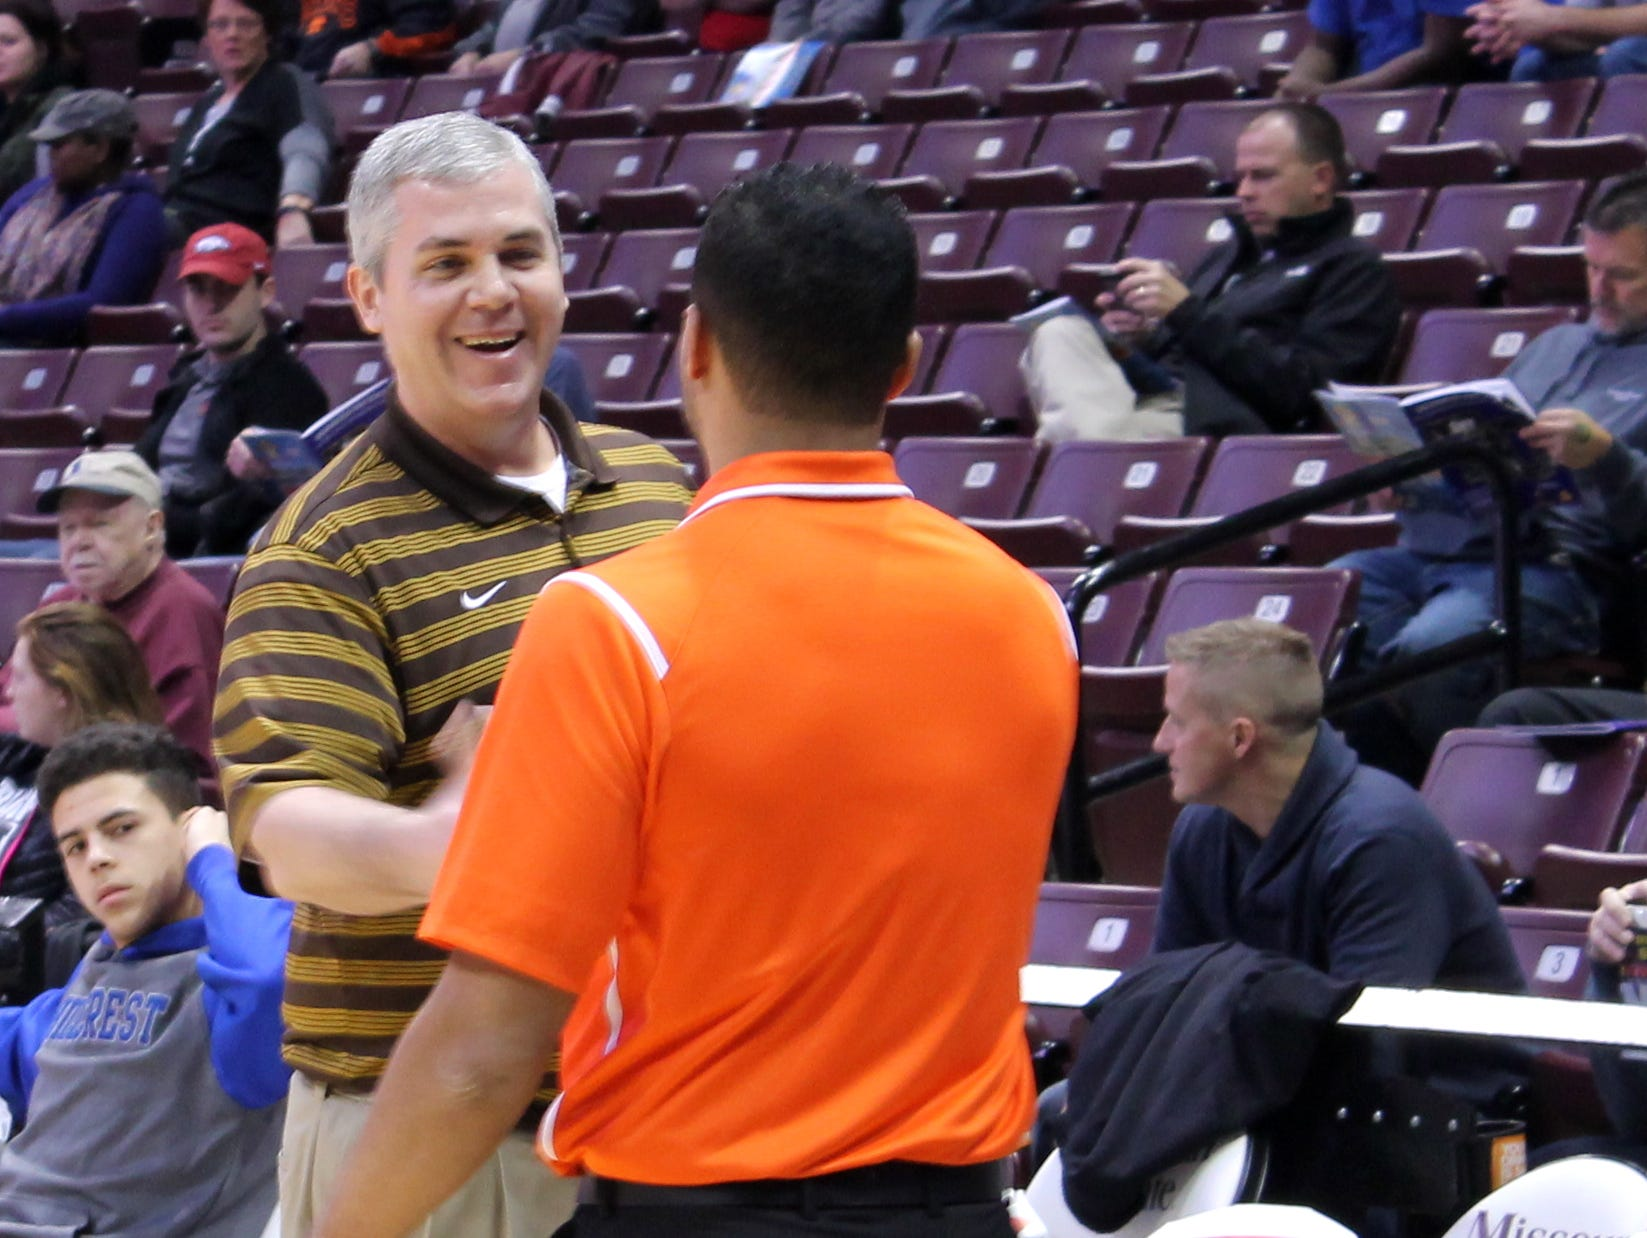 Kickapoo boys basketball coach Dick Rippee (left) shakes hands with Hillcrest Joel Brown, a former assistant of Rippee's for five seasons, prior to a Blue and Gold Tournament game between the two Springfield teams Dec. 28, 2015 at JQH Arena.